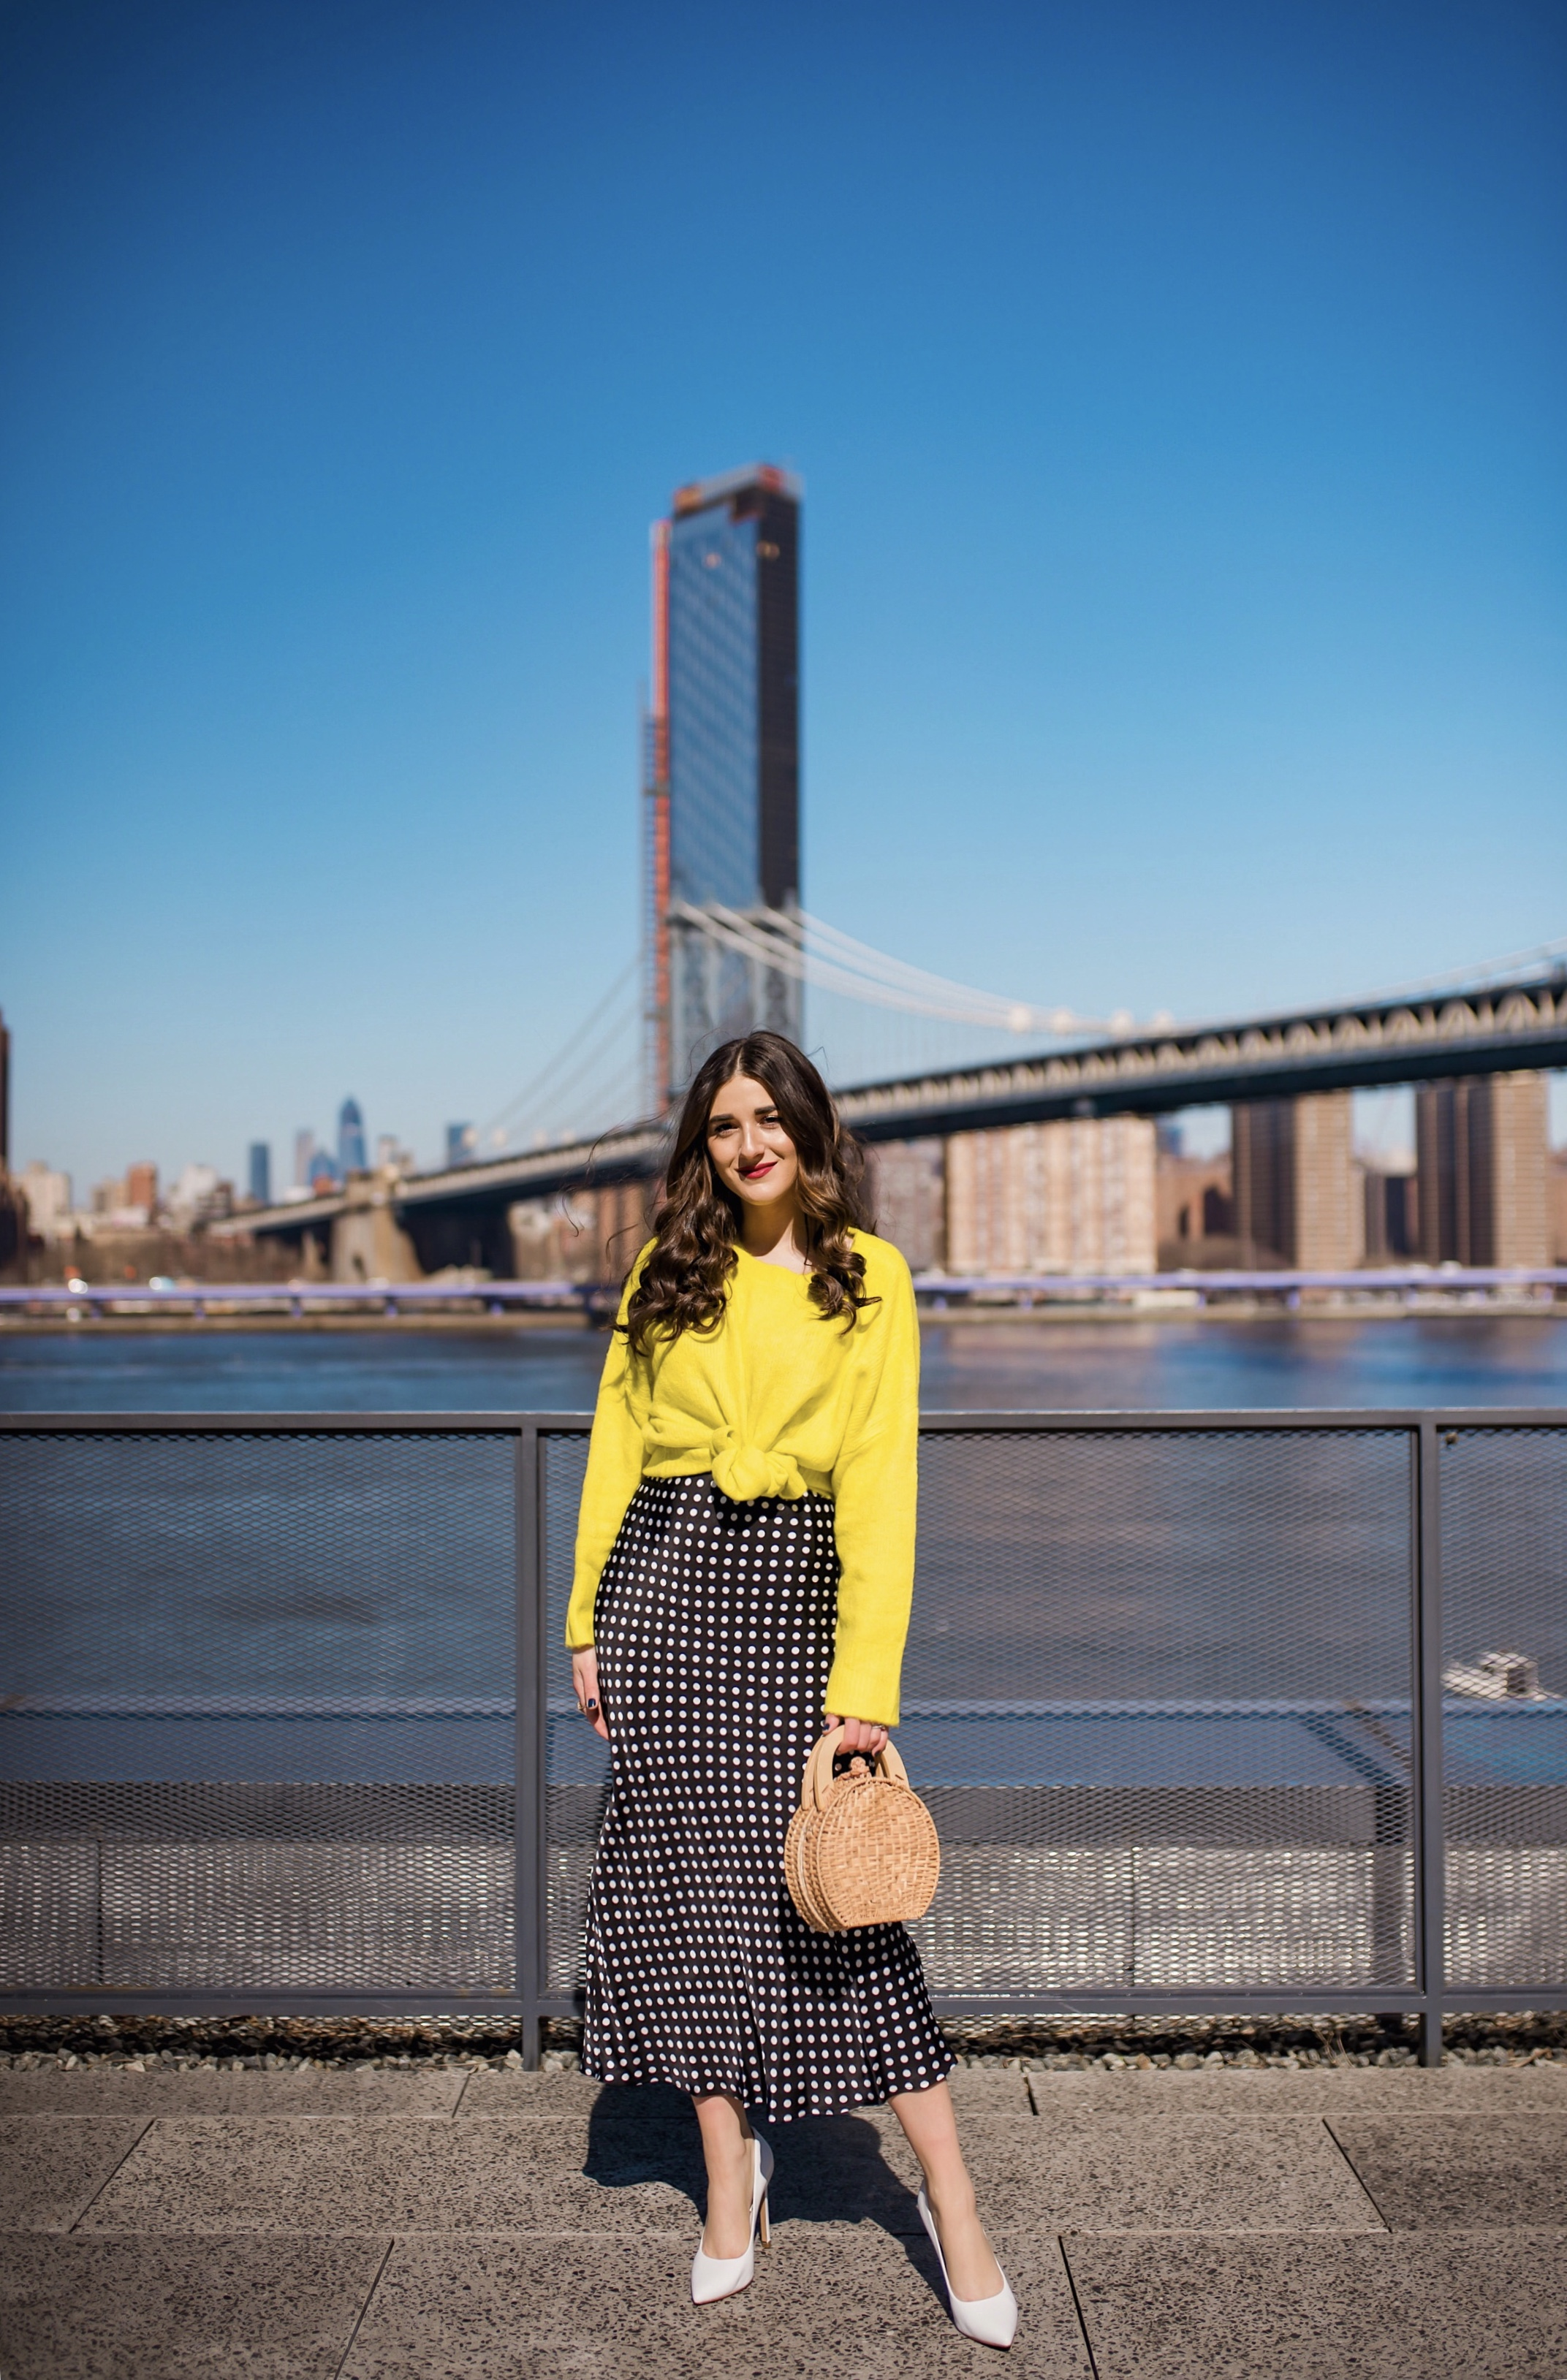 How I Wound Up With Boring White Dishes Navy Polka Dot Dress Neon Yellow Knotted Sweater Esther Santer Fashion Blog NYC Street Style Blogger Outfit OOTD Trendy Shopping Girl White Heels What How To Wear Dumbo Brooklyn Bridge Laurel Creative Photoshoot.JPG